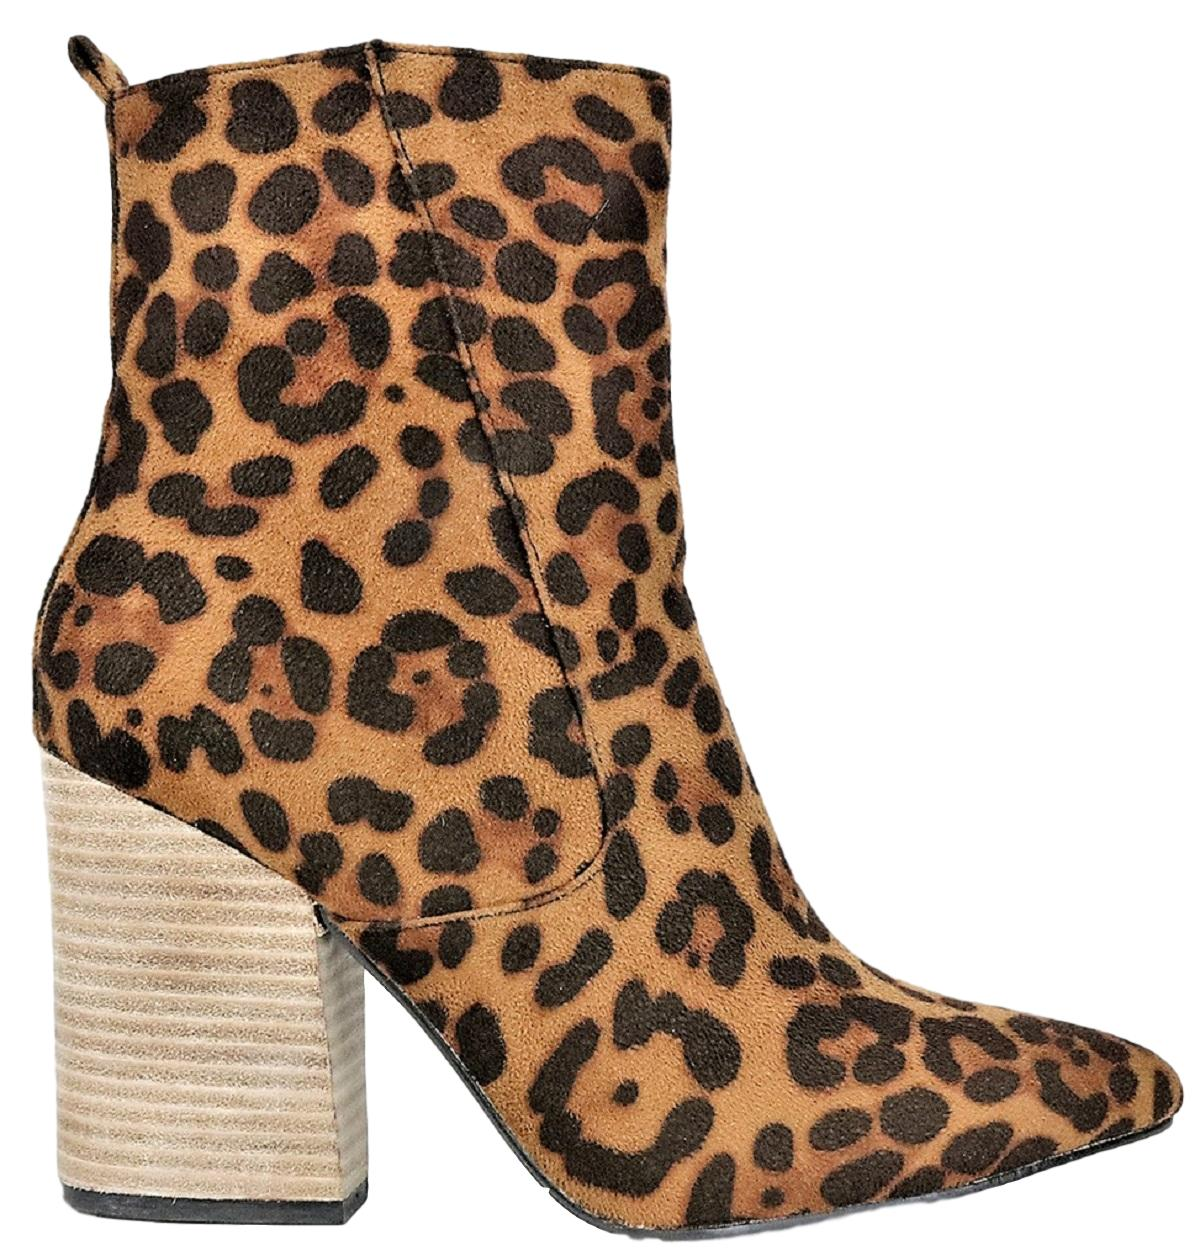 Harmony-01 Women Western Pointed Toe Block Heel Side Zipper Ankle Boots Leopard